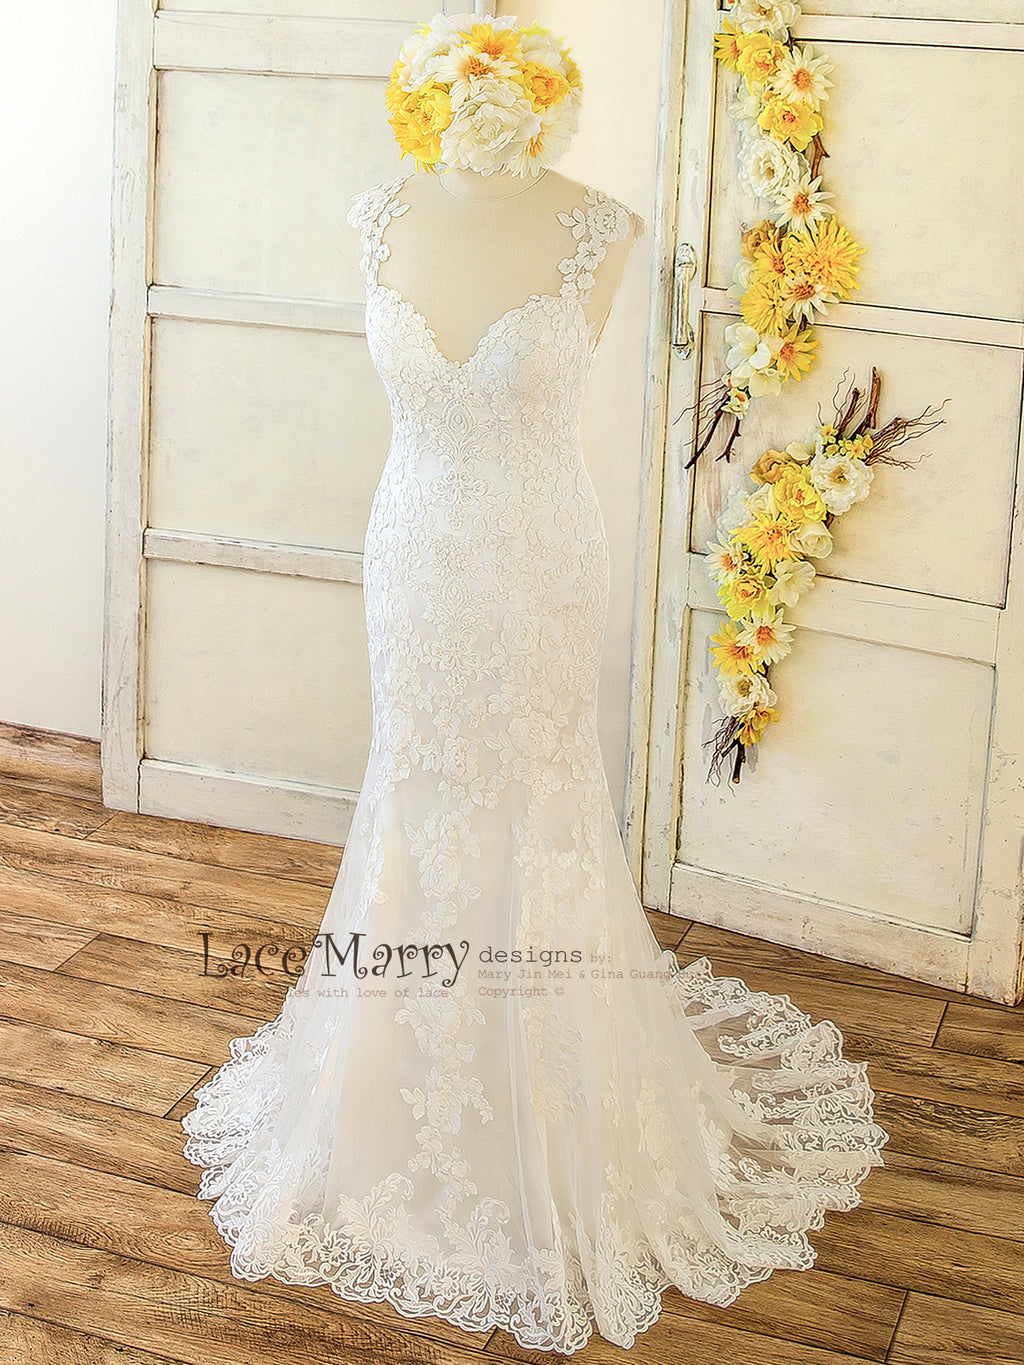 Trumpet Wedding Dresses by LaceMarry | Custom Made Just for You!